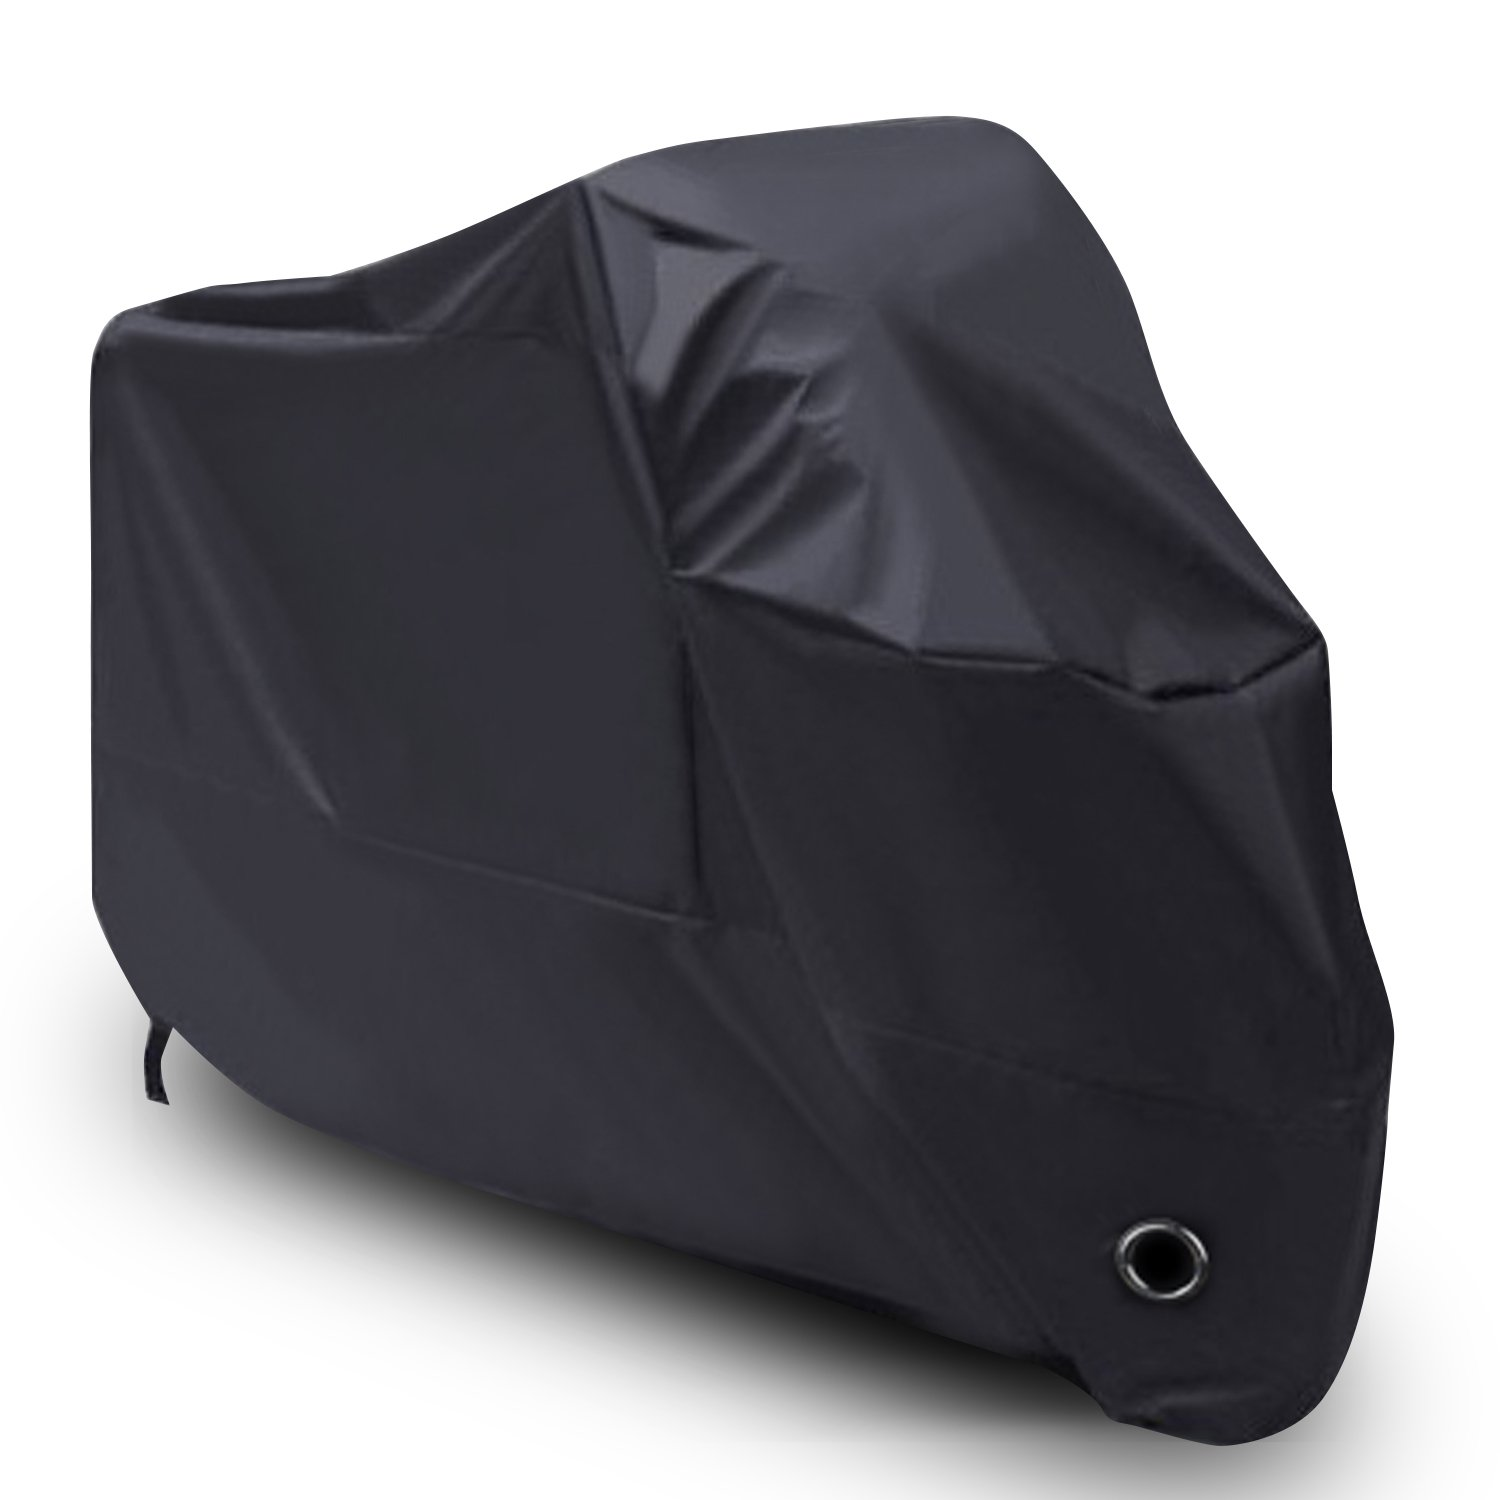 LIHAO Waterproof Motorcycle Cover Shelter Rain UV All Weather Protection by LIHAO